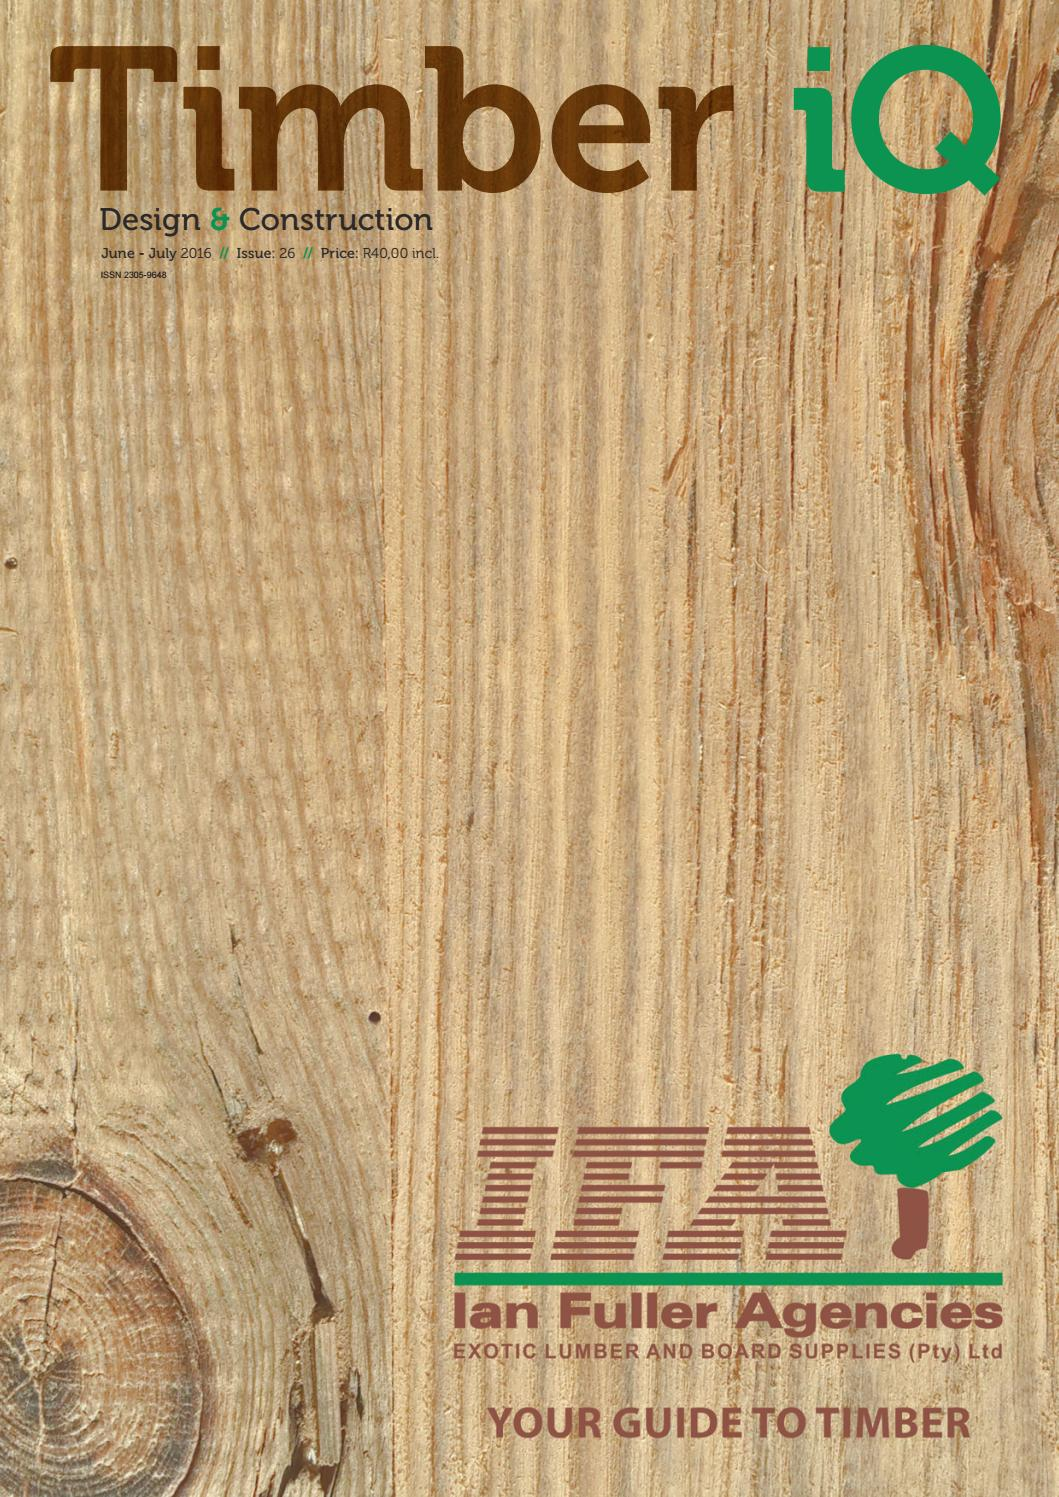 Timber iQ June / July 2016 | Issue: 26 by Trademax Publications - issuu